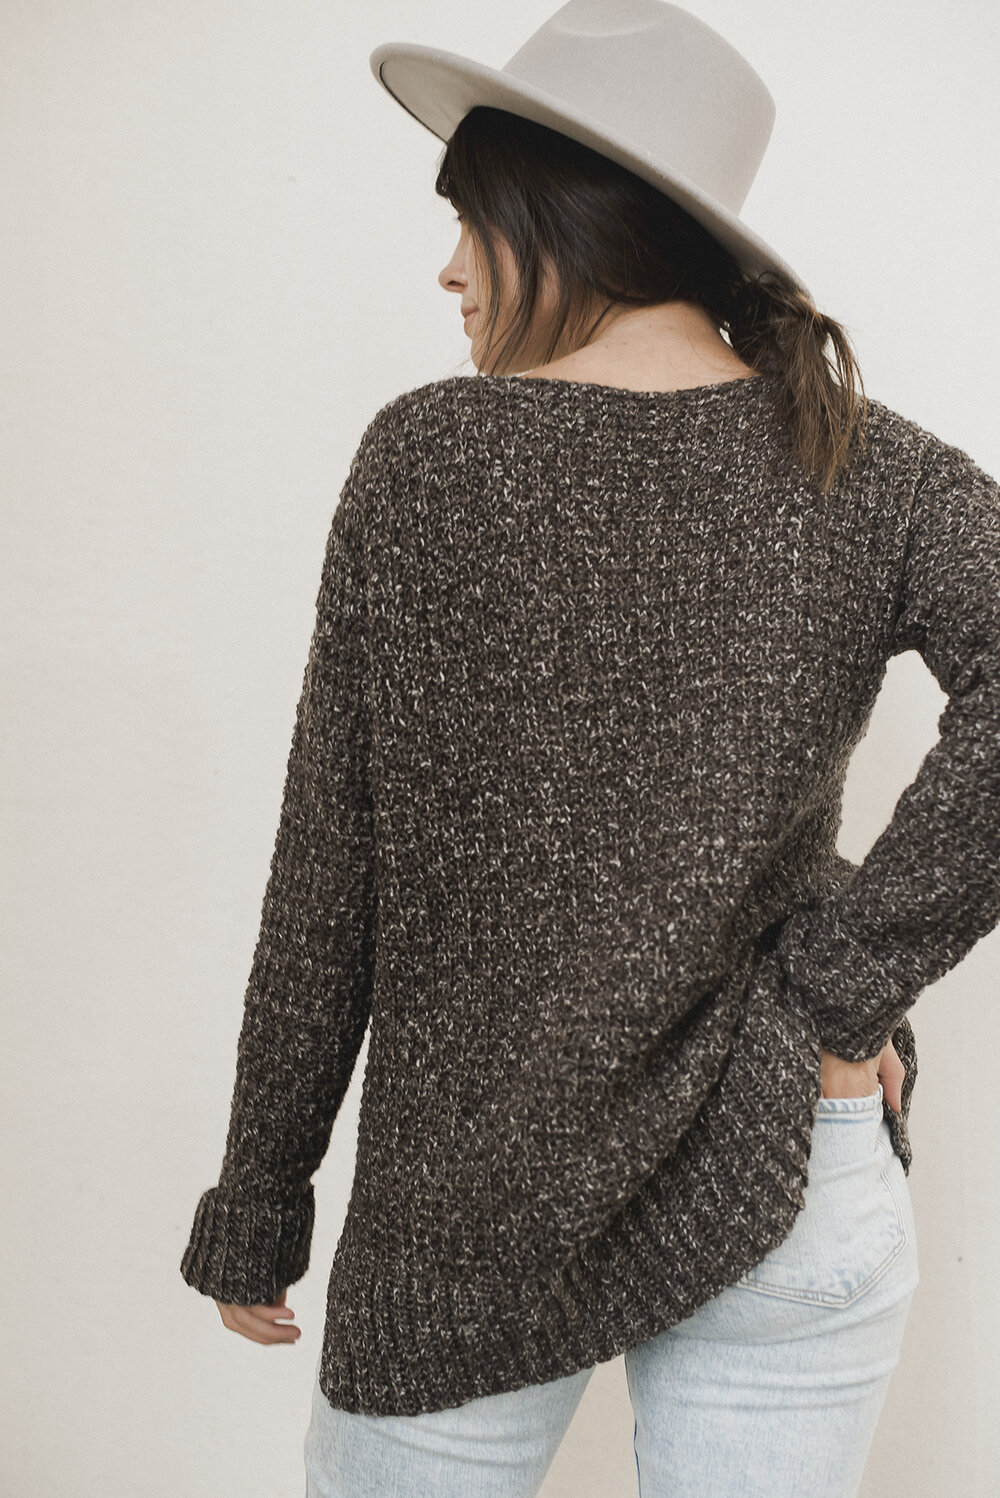 Free Crochet Pattern for the Home Girl Sweater - Megmade with Love